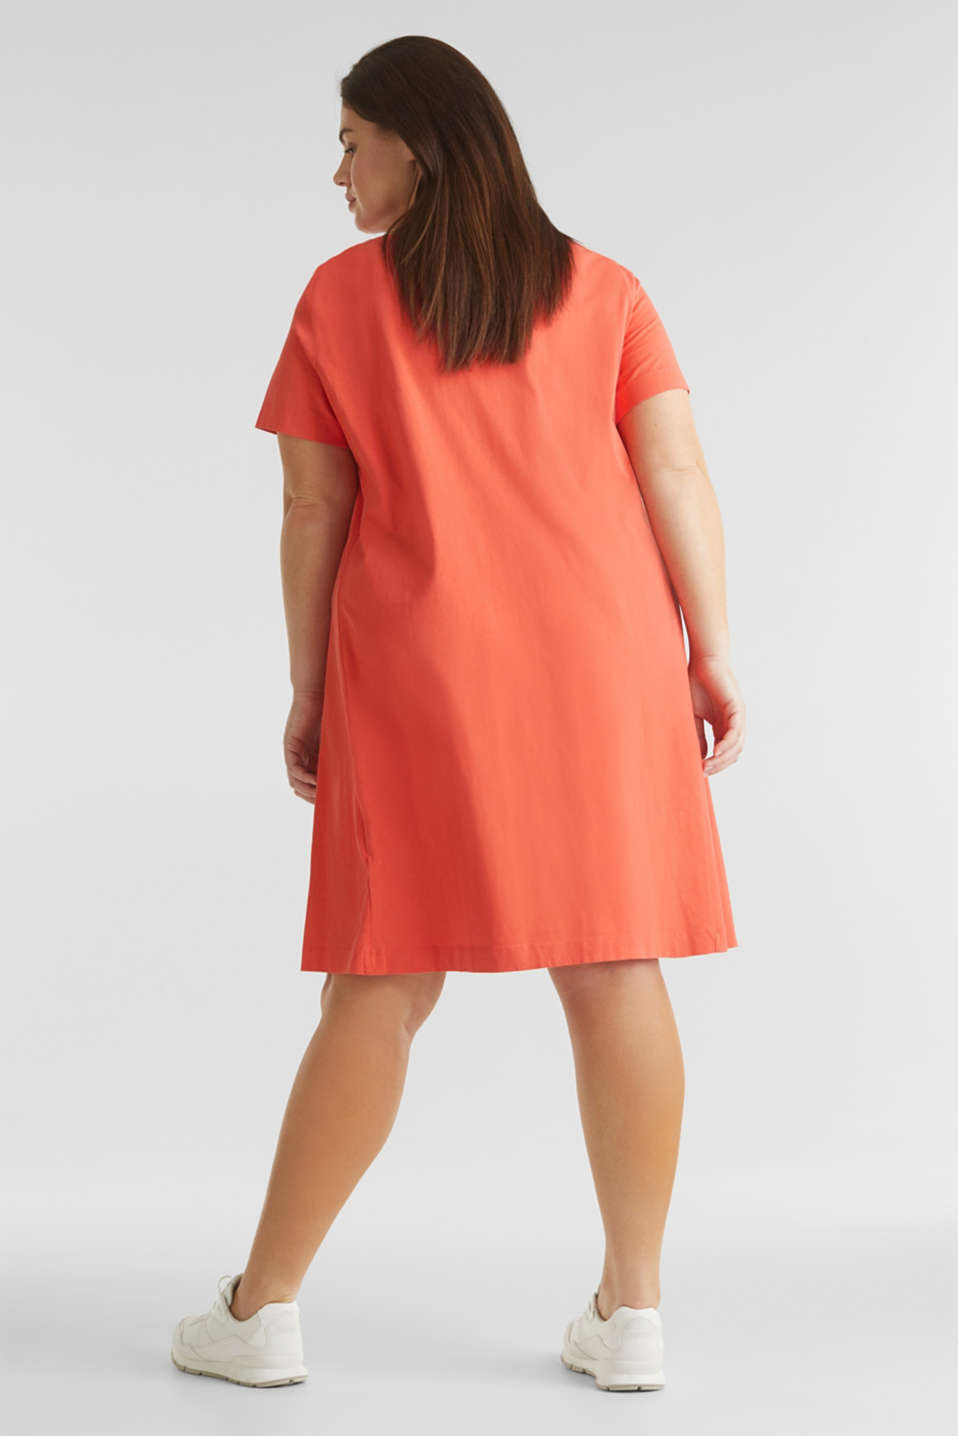 CURVY jersey dress made of 100% cotton, CORAL, detail image number 2